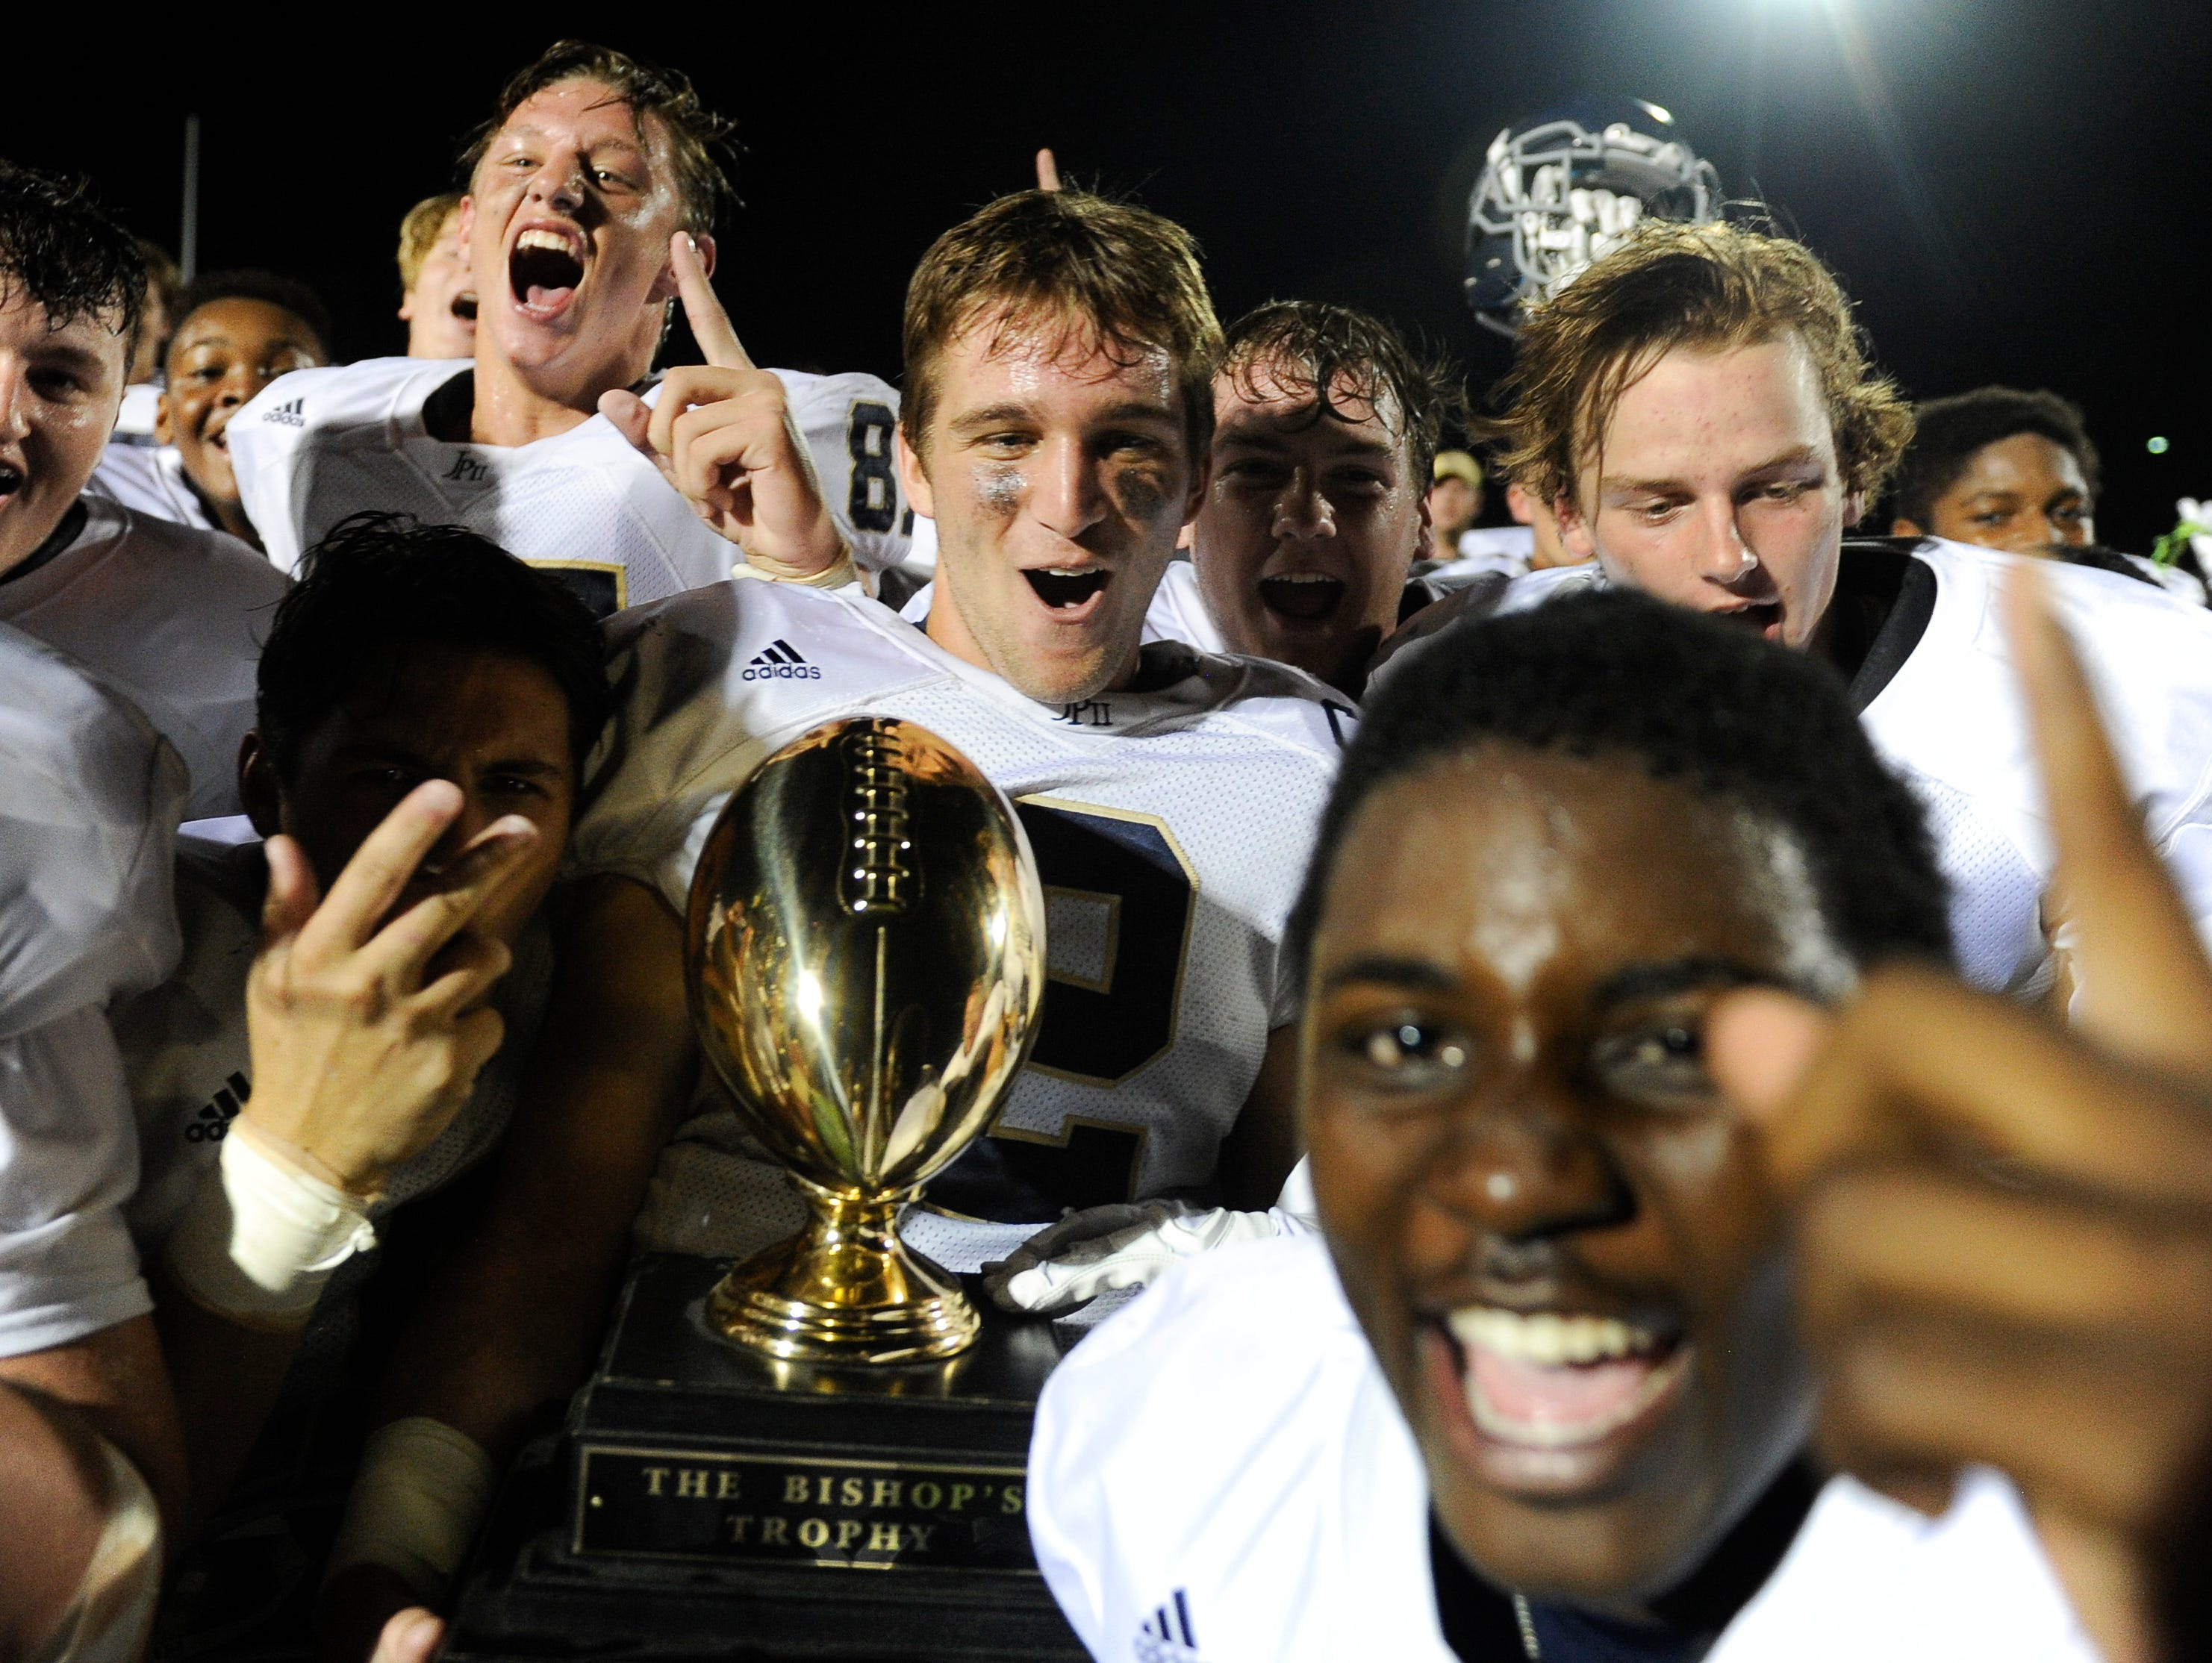 Members of the John Paul II football team celebrate their win over Father Ryan with the Bishop's trophy Friday Sept. 9, 2016, in Nashville, Tenn.